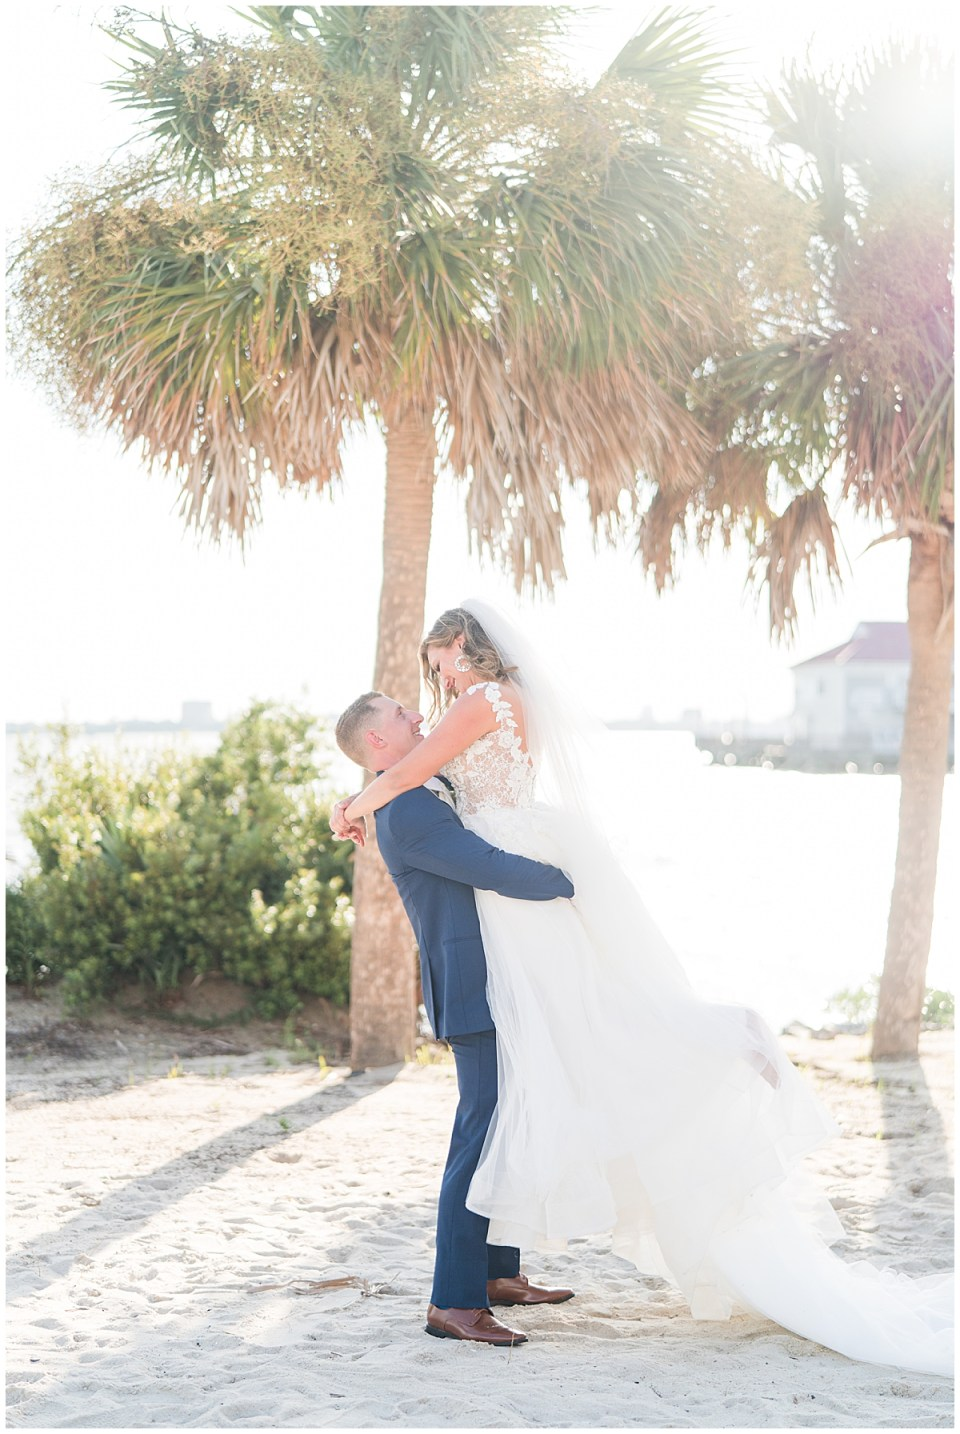 Charleston Harbor Resort Outdoor Beach Wedding Charleston Wedding Photographer_0047.jpg